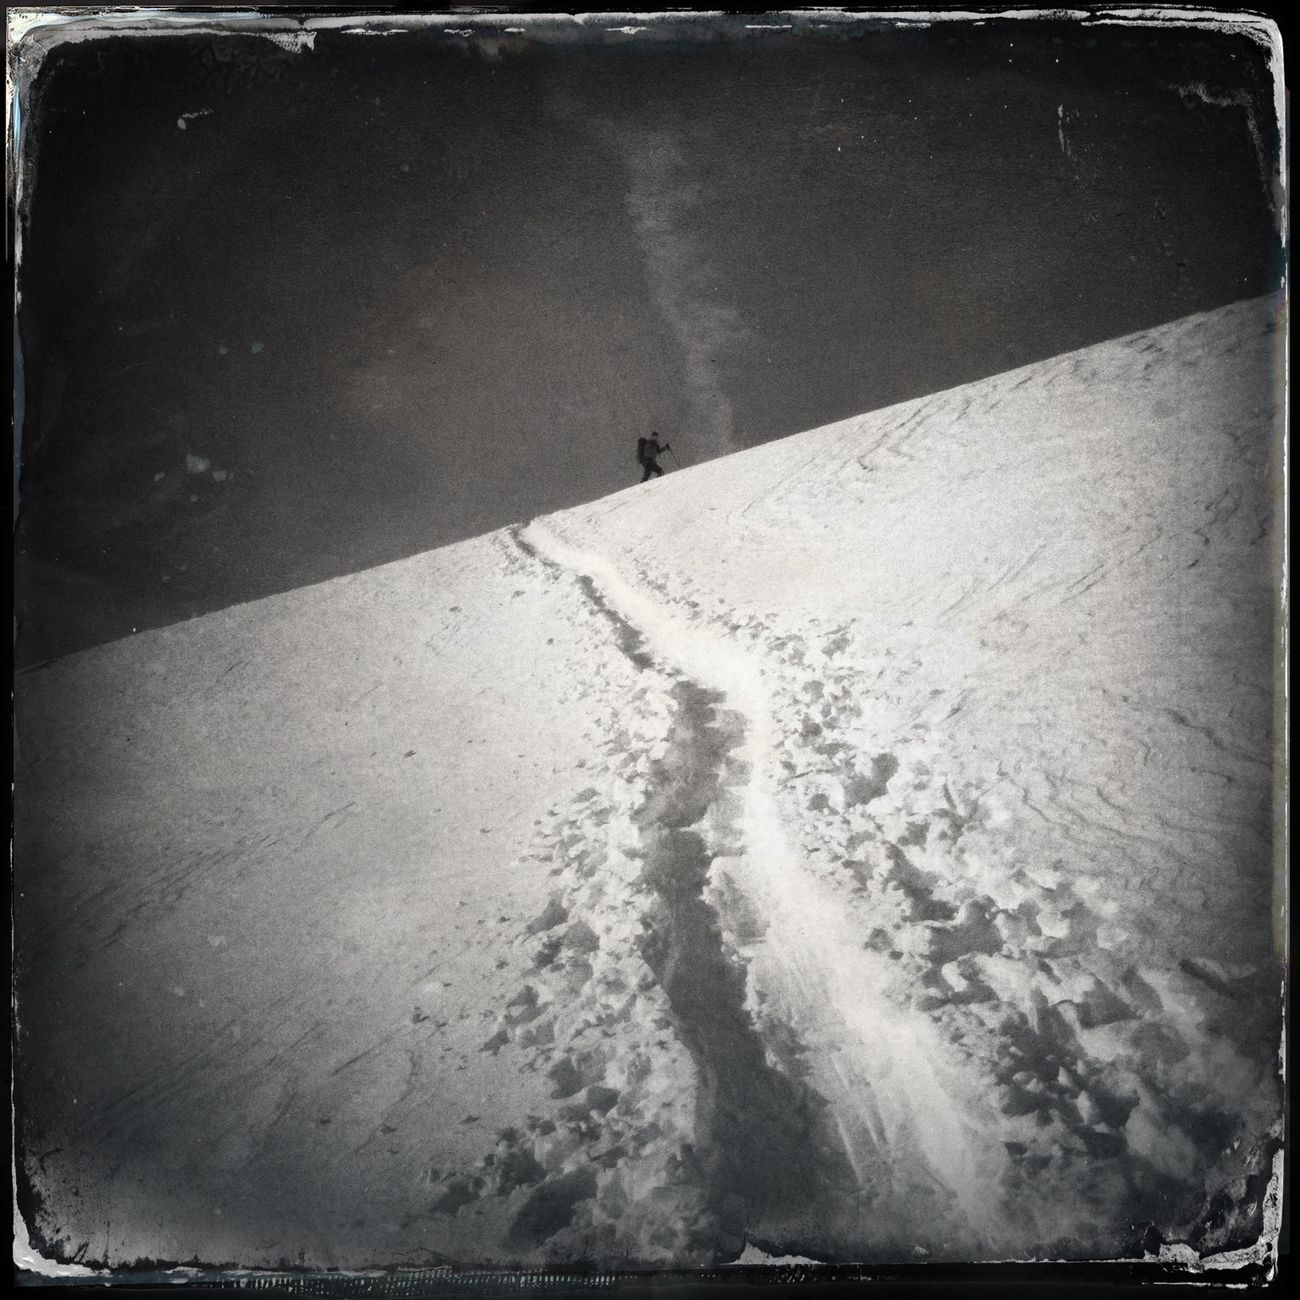 The path in the snow leading up the mountain Hipstamatic The_guido Blackandwhite